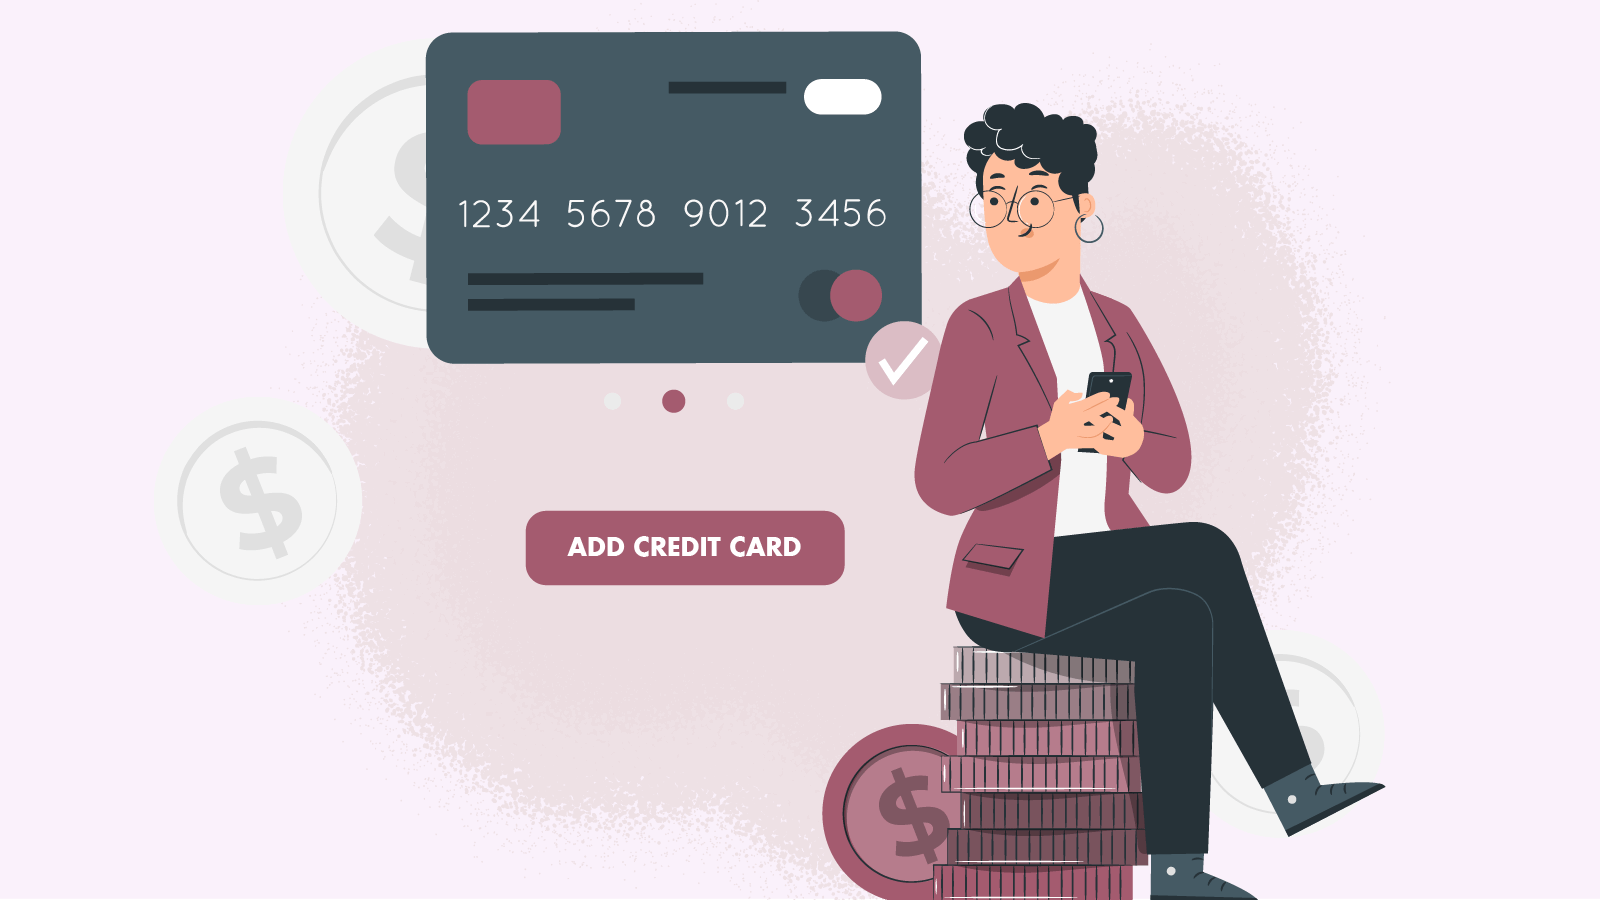 How to add a payment card